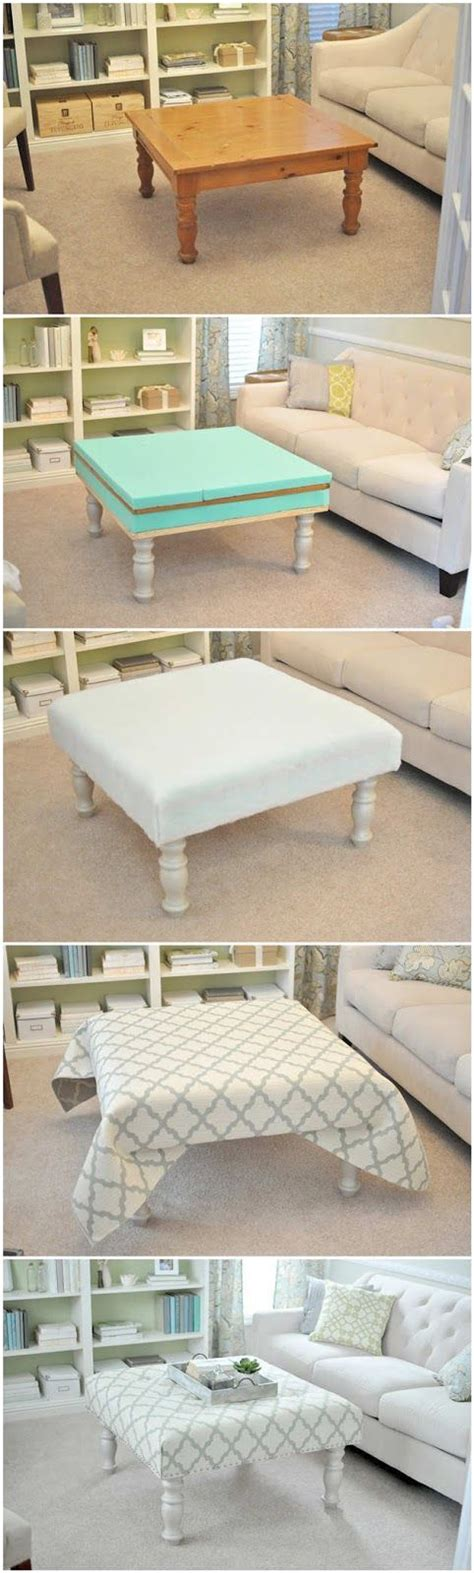 diy upholstered ottoman coffee table best 25 upholstered ottoman ideas on pinterest diy